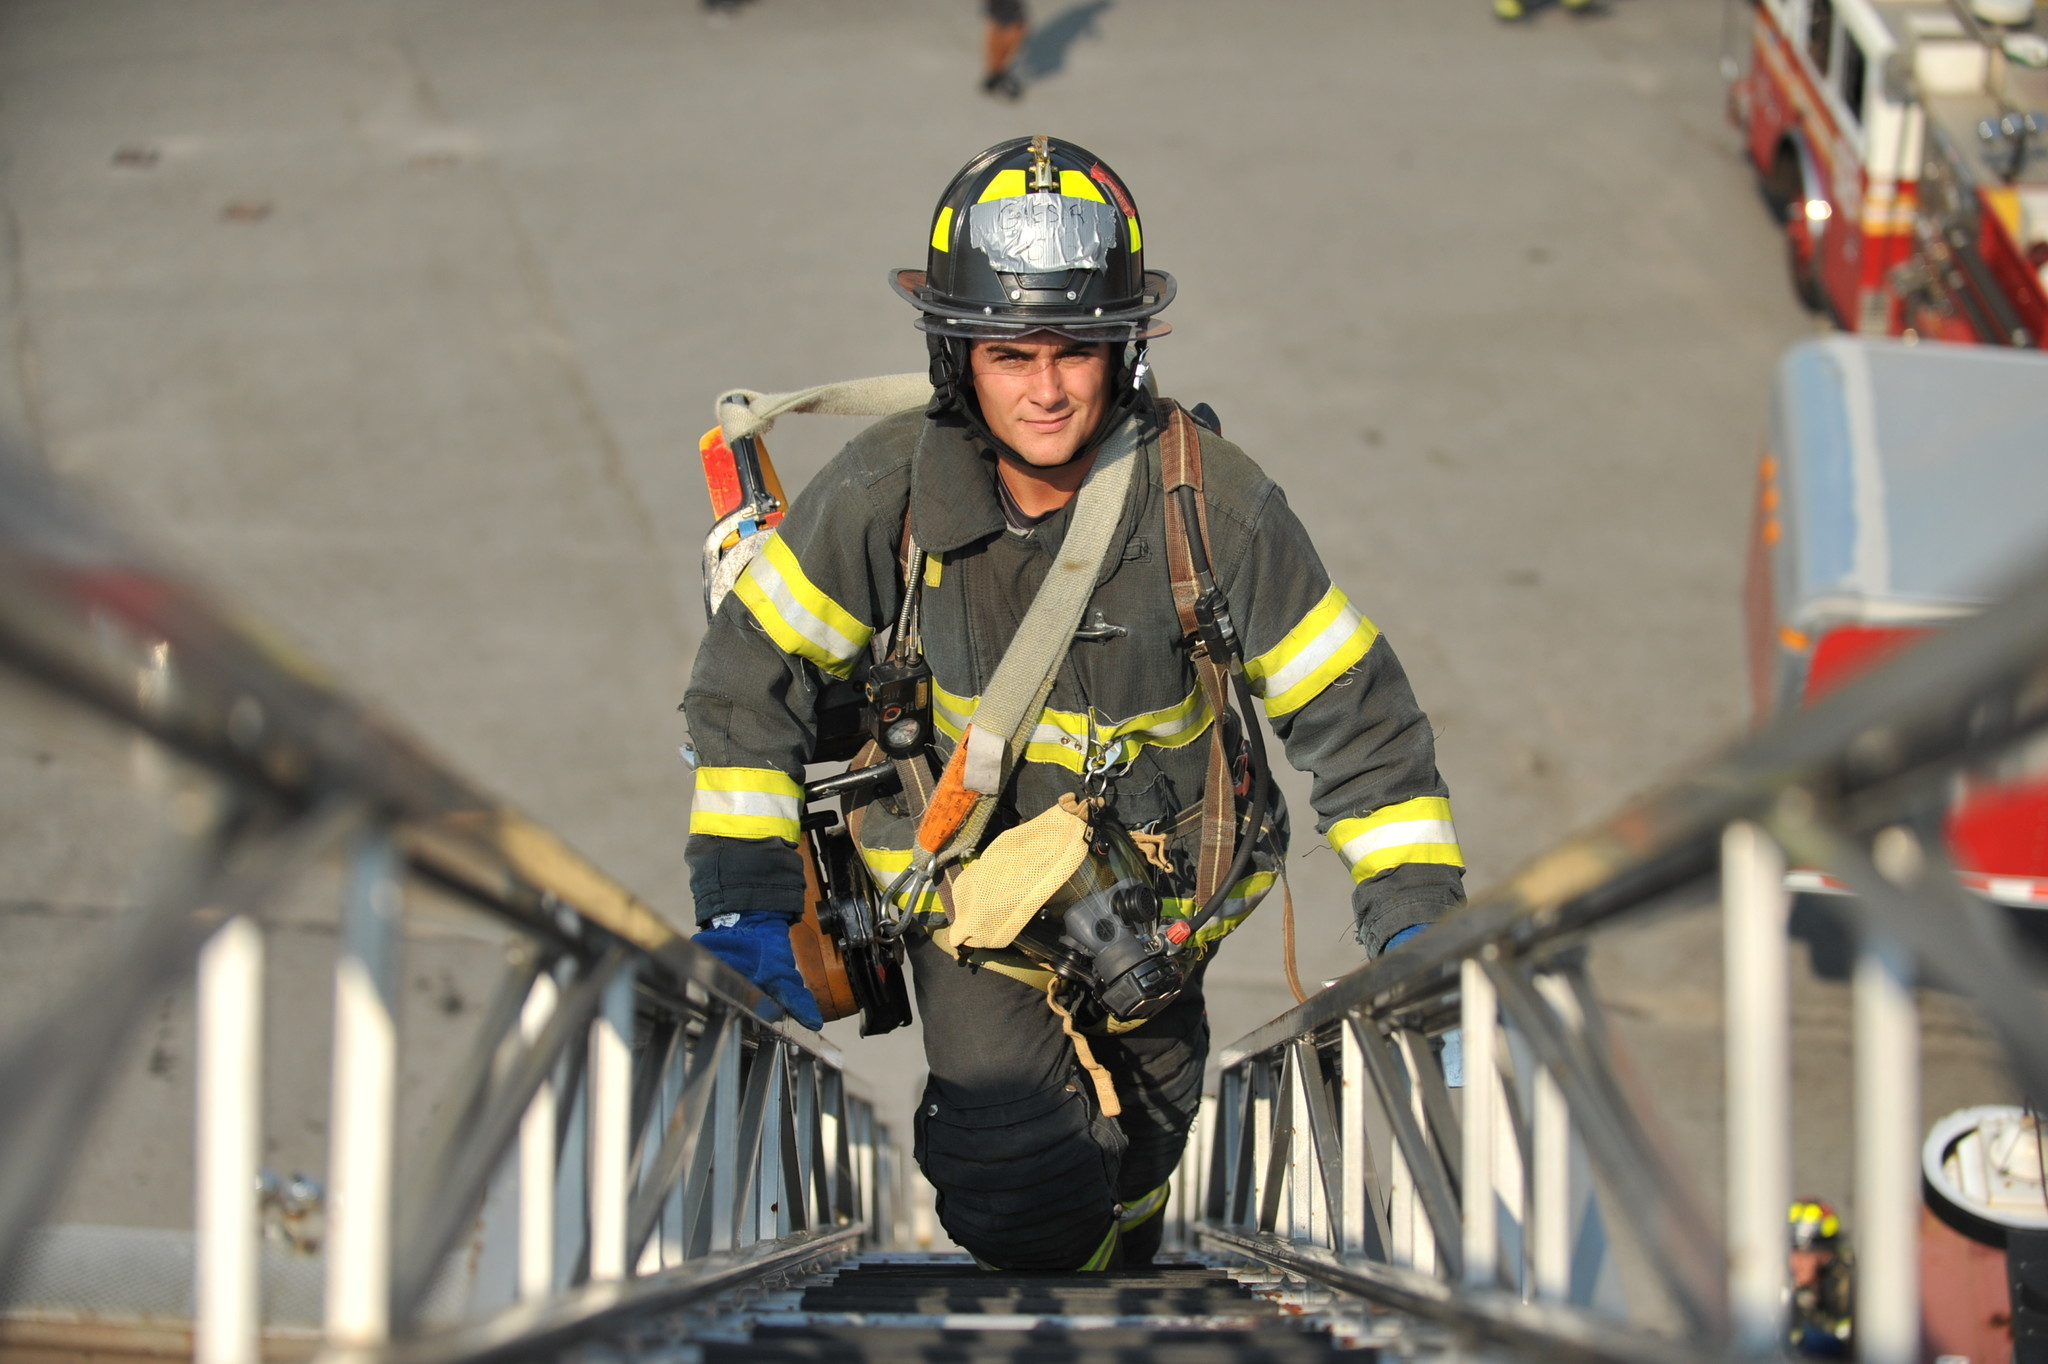 NYC firefighter achieves his father's dream of becoming a FDNY lieutenant